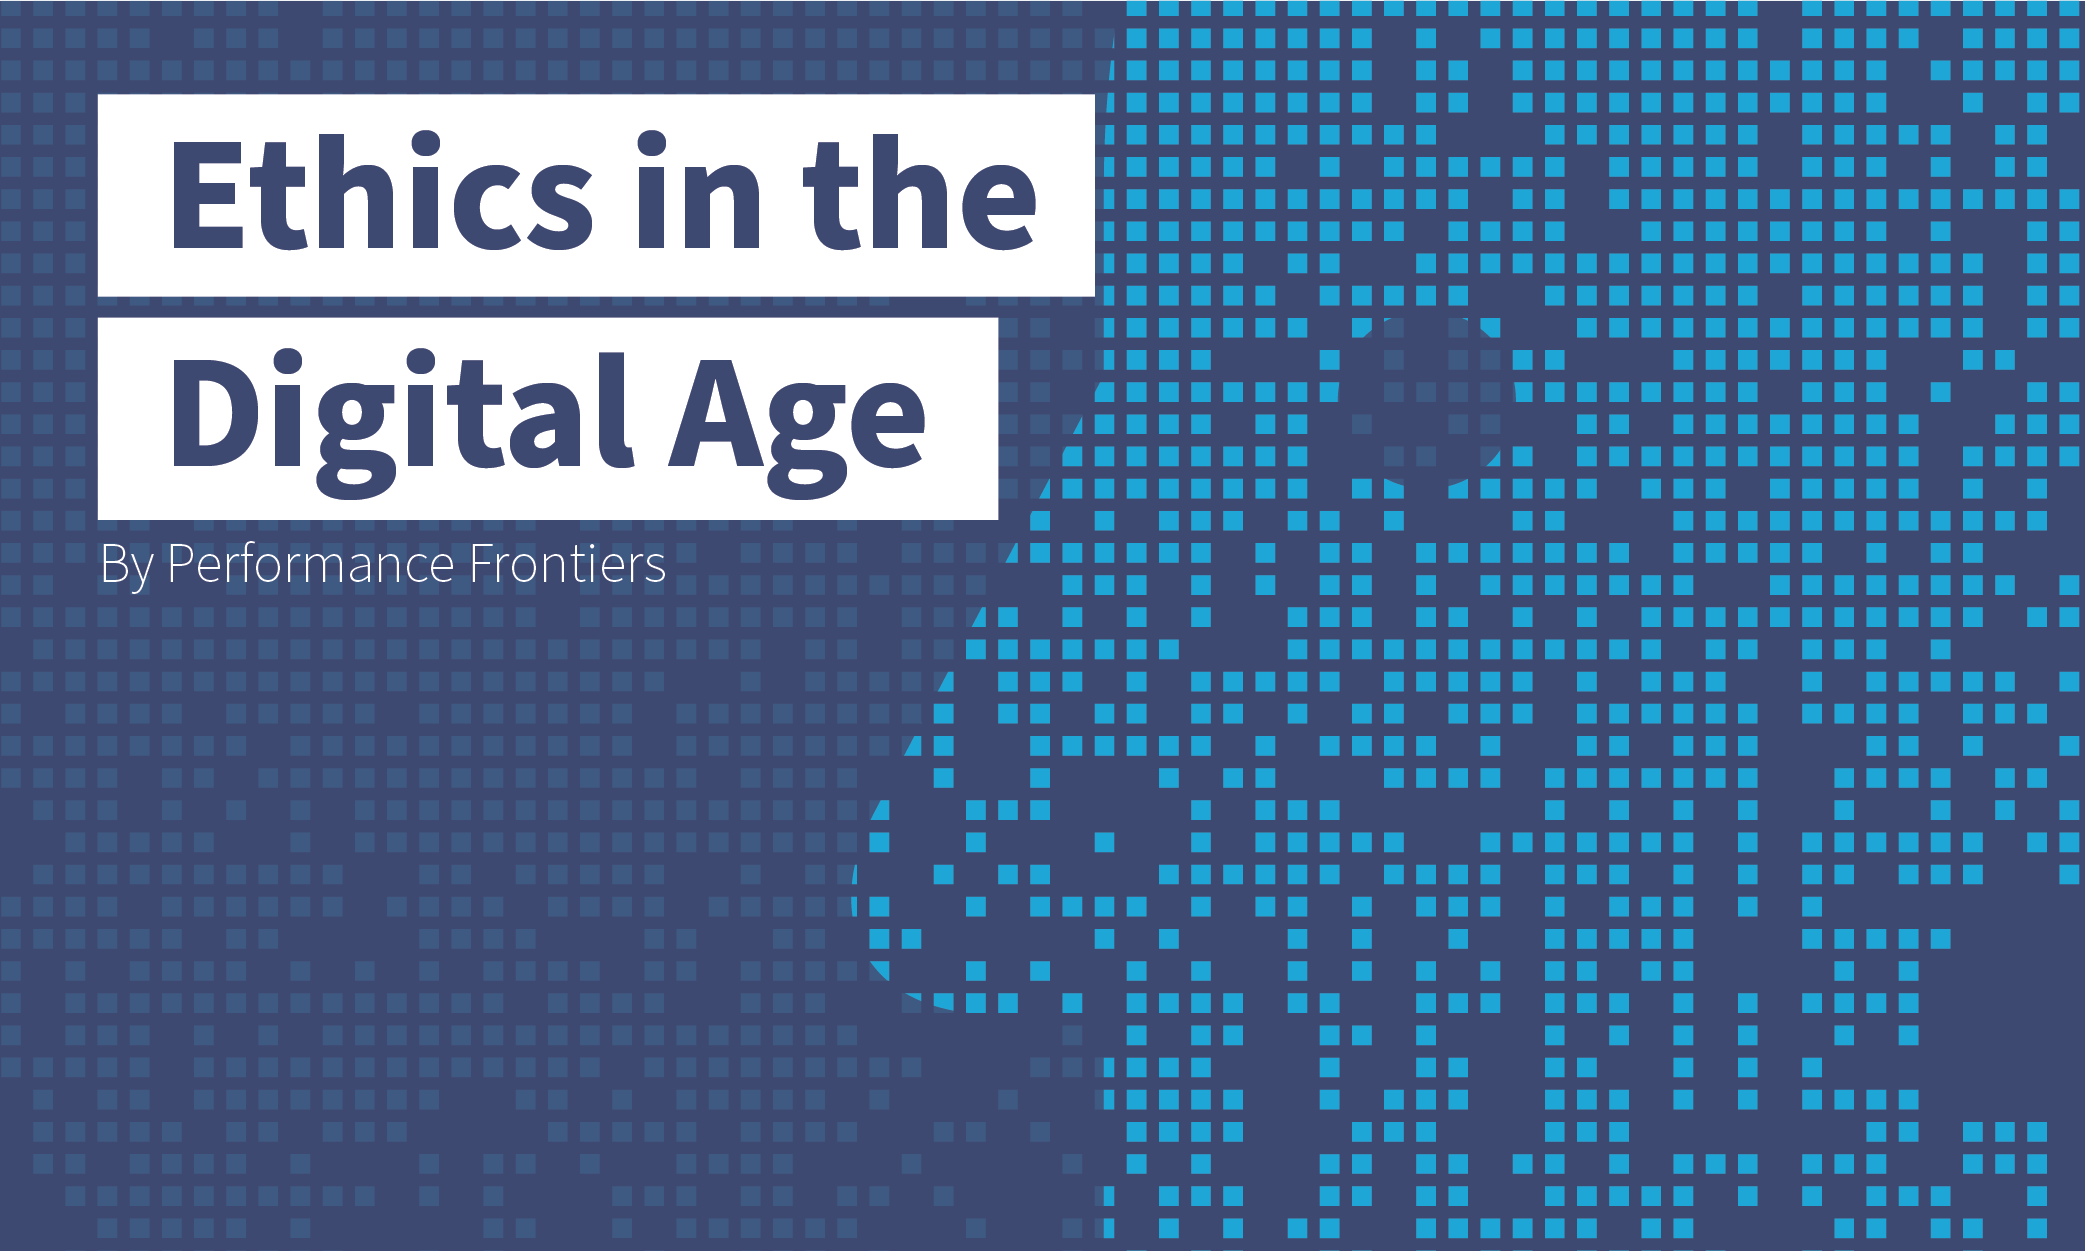 Ethics in the Digital Age